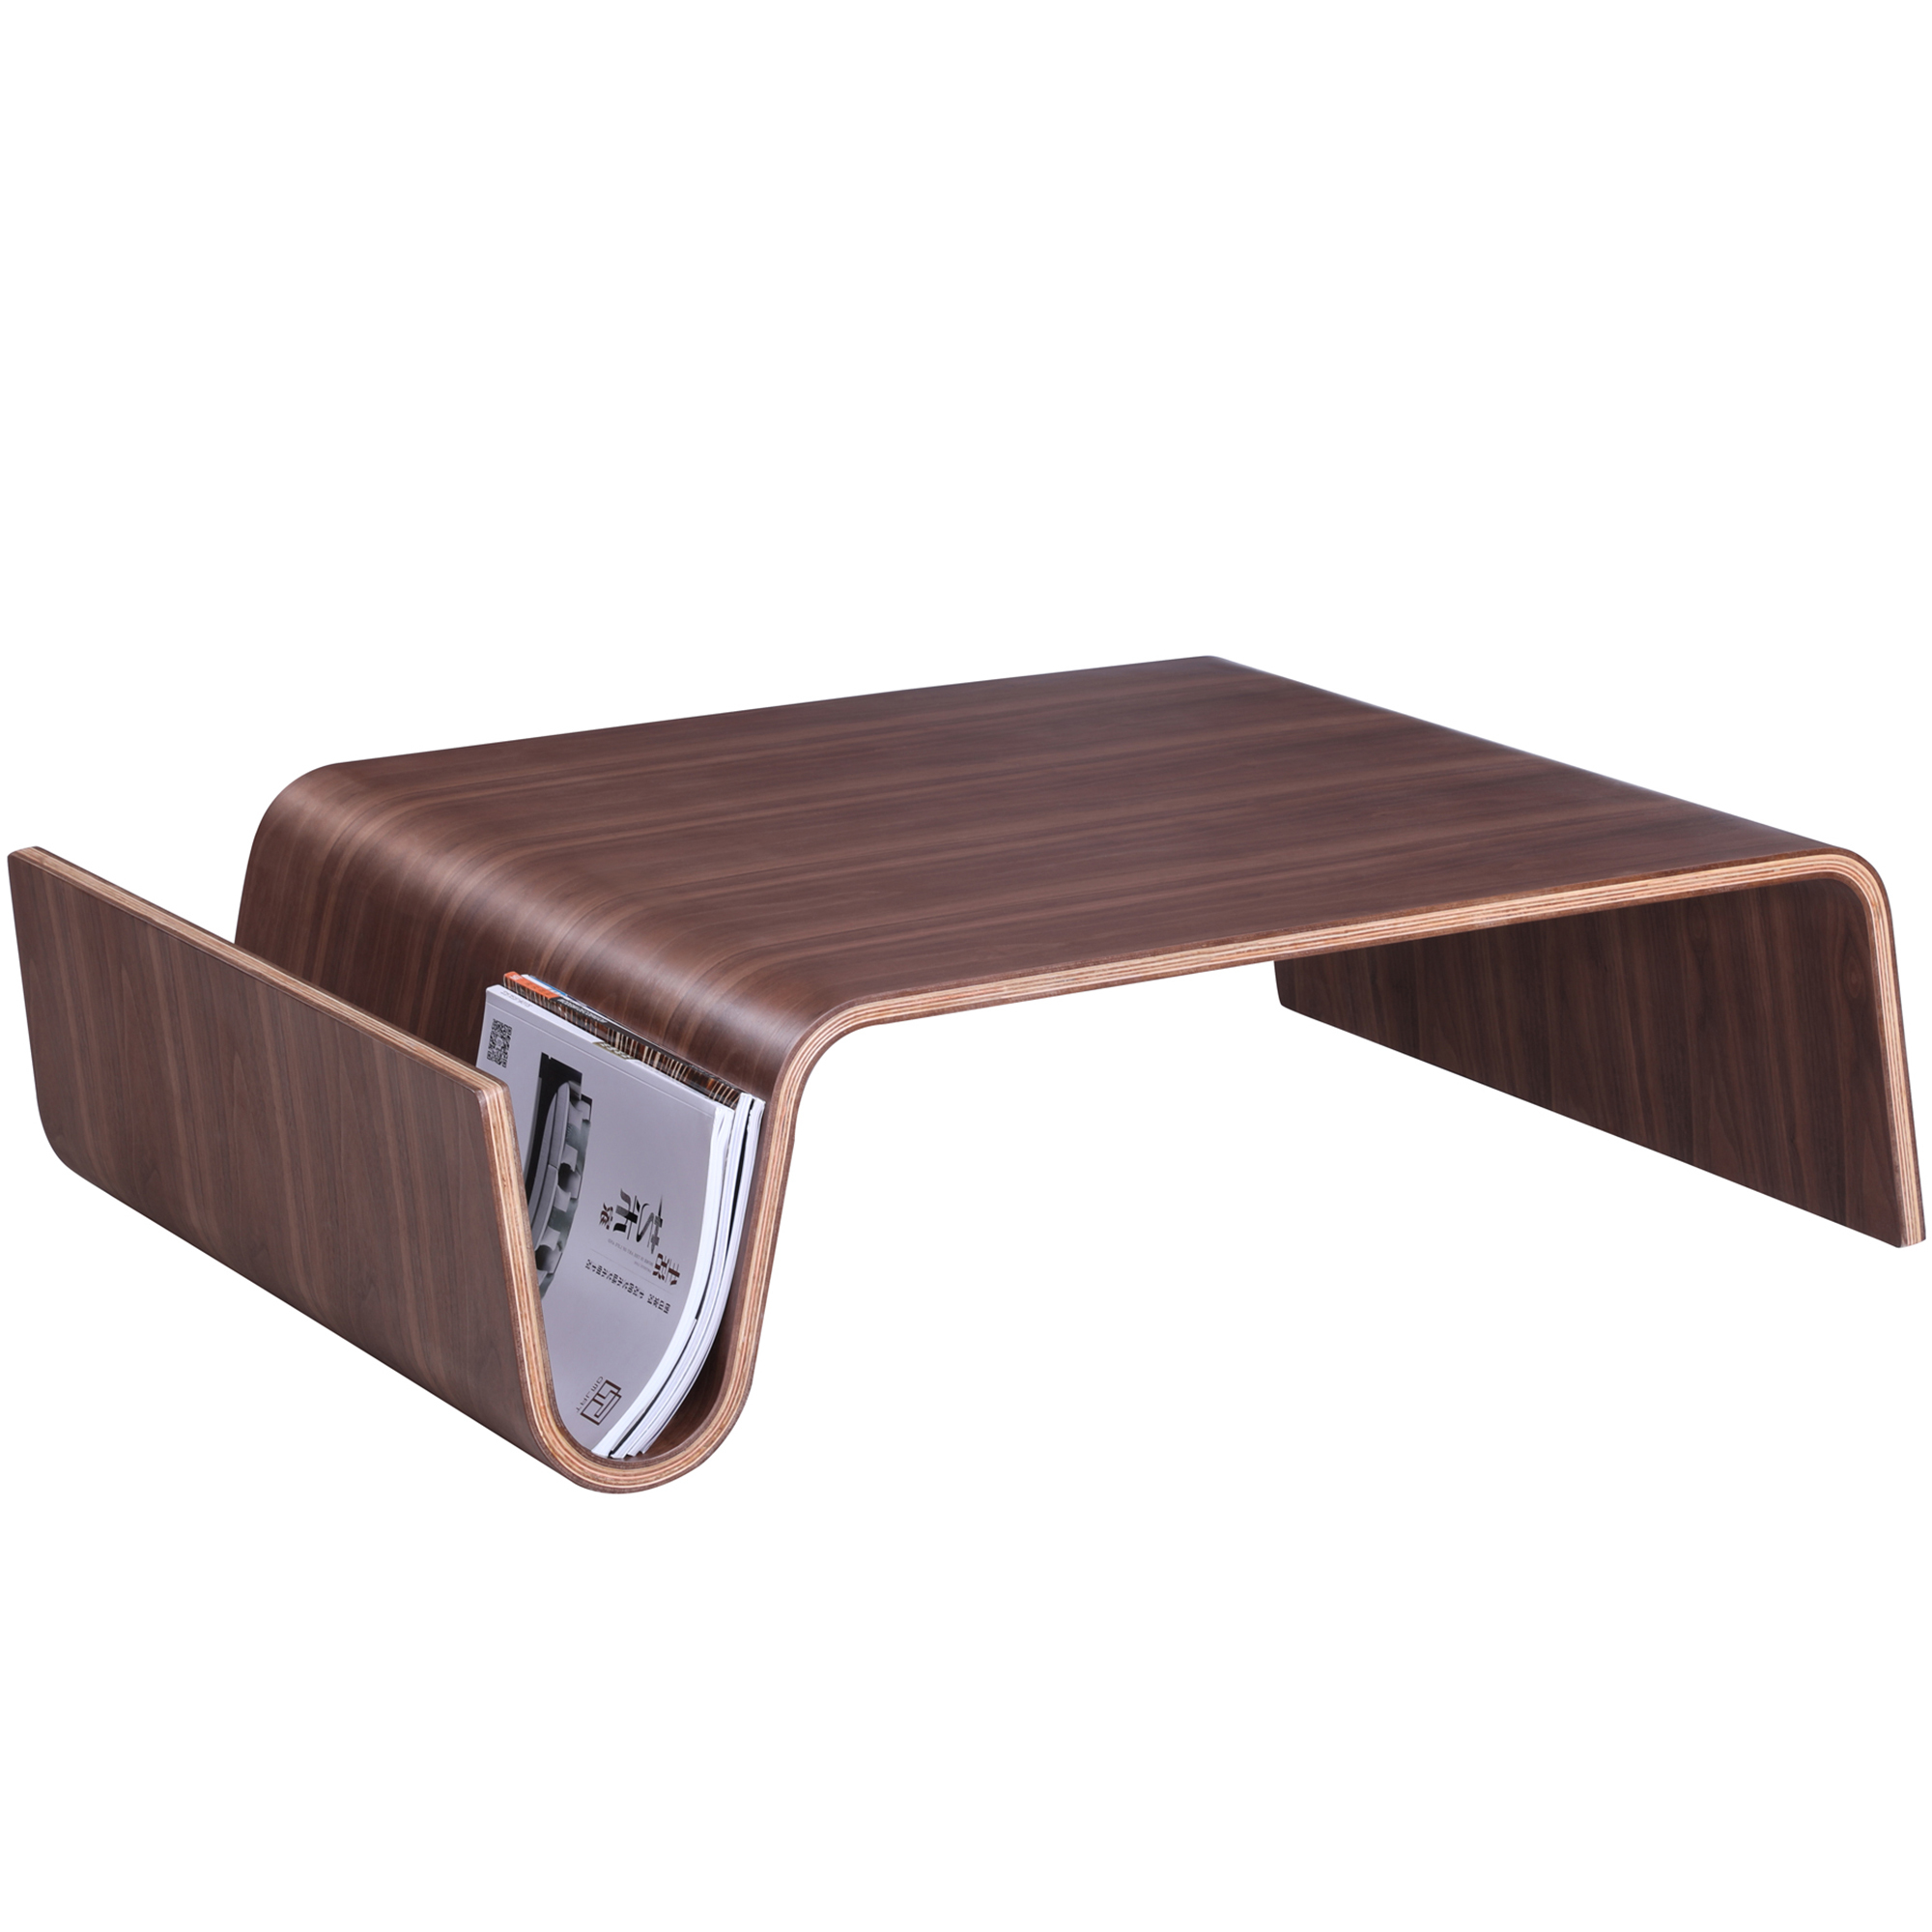 sku tpwt walnut eric pfeiffer replica offi scando coffee table is alsosometimes listed under the following manufacturer numbers zrscctwl. walnut eric pfeiffer replica offi scando coffee table  temple